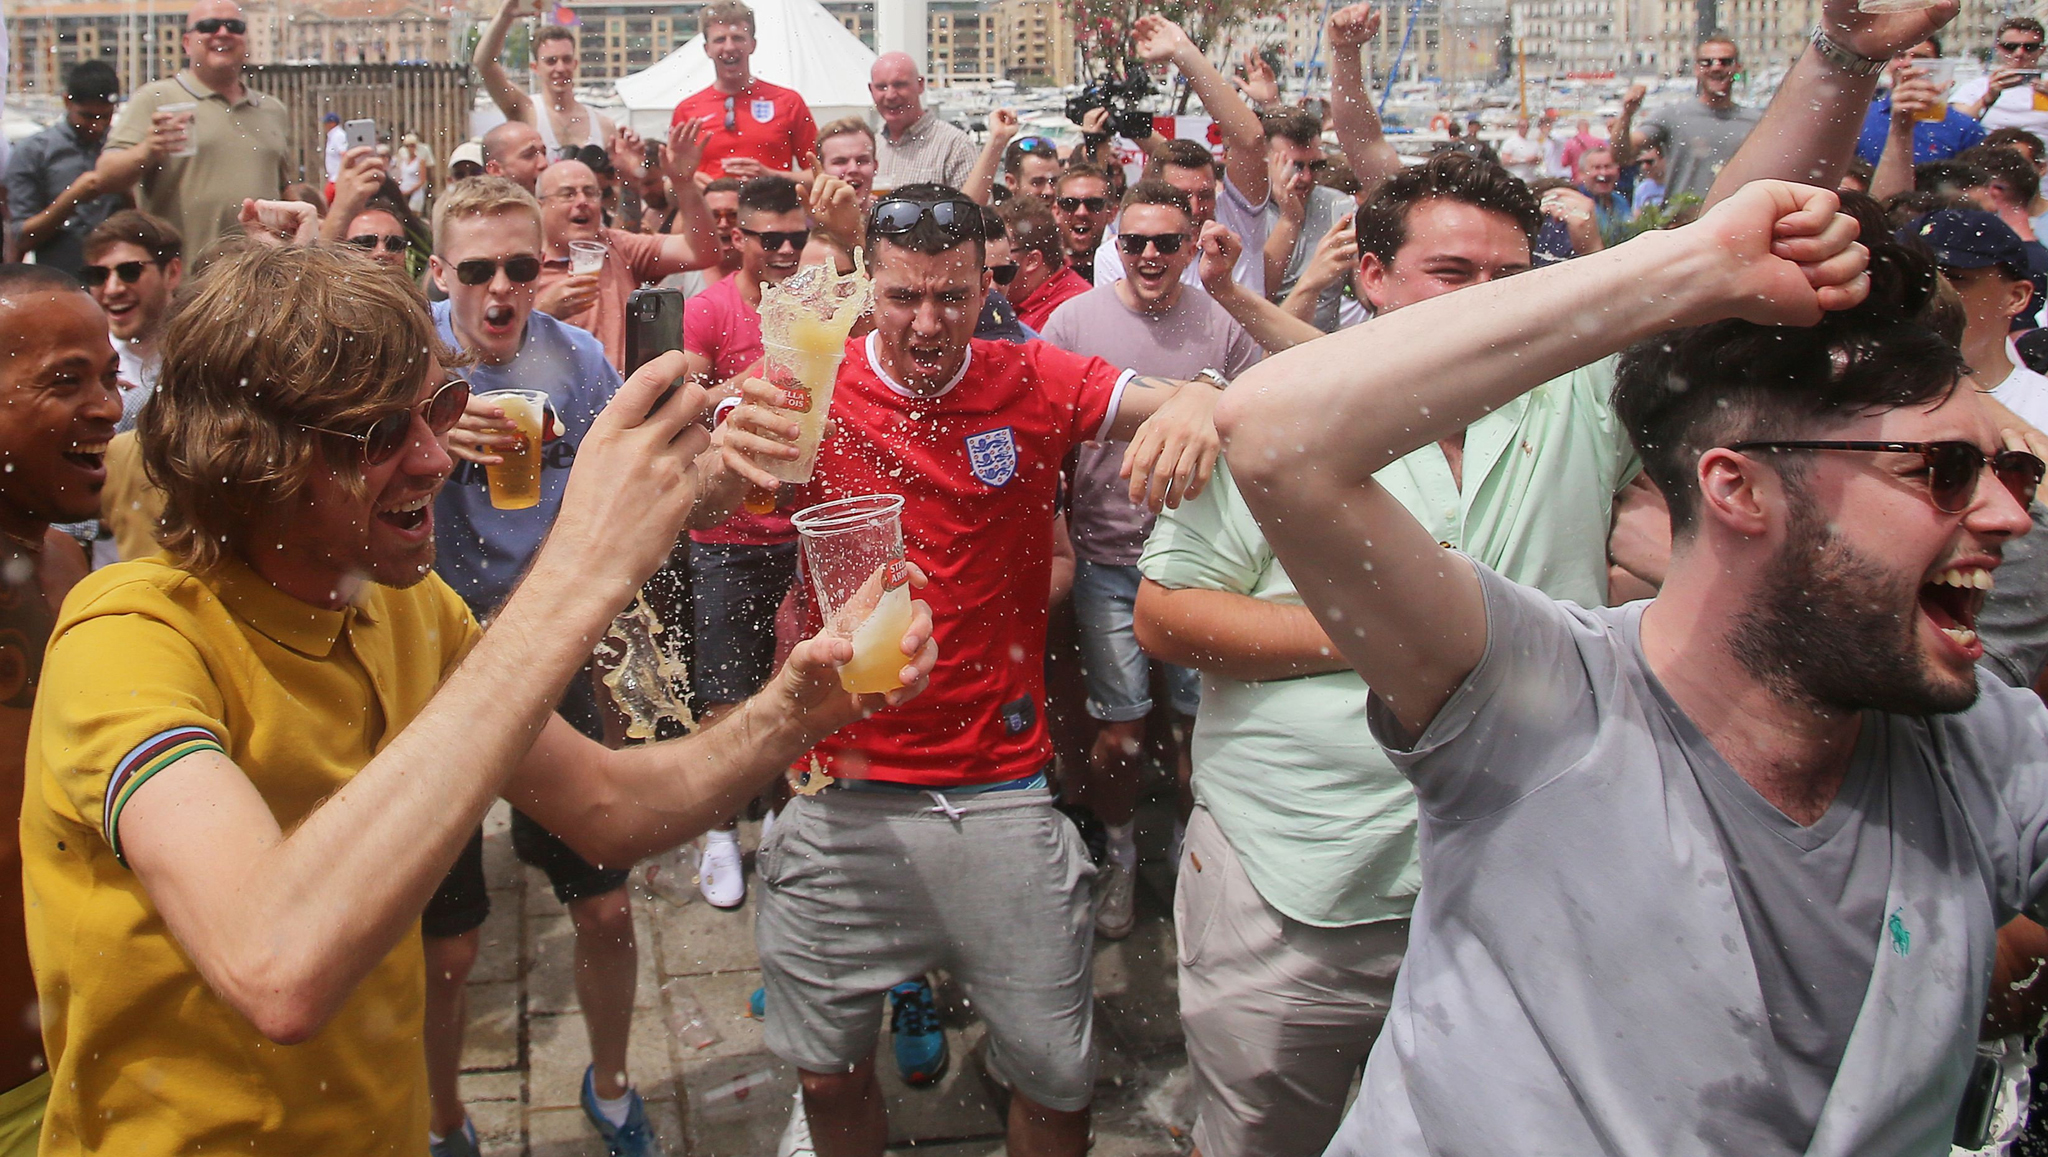 England fans chant in Marseille Old Town, ahead of their team's first match of the Euro 2016 soccer tournament against Russia on Saturday.